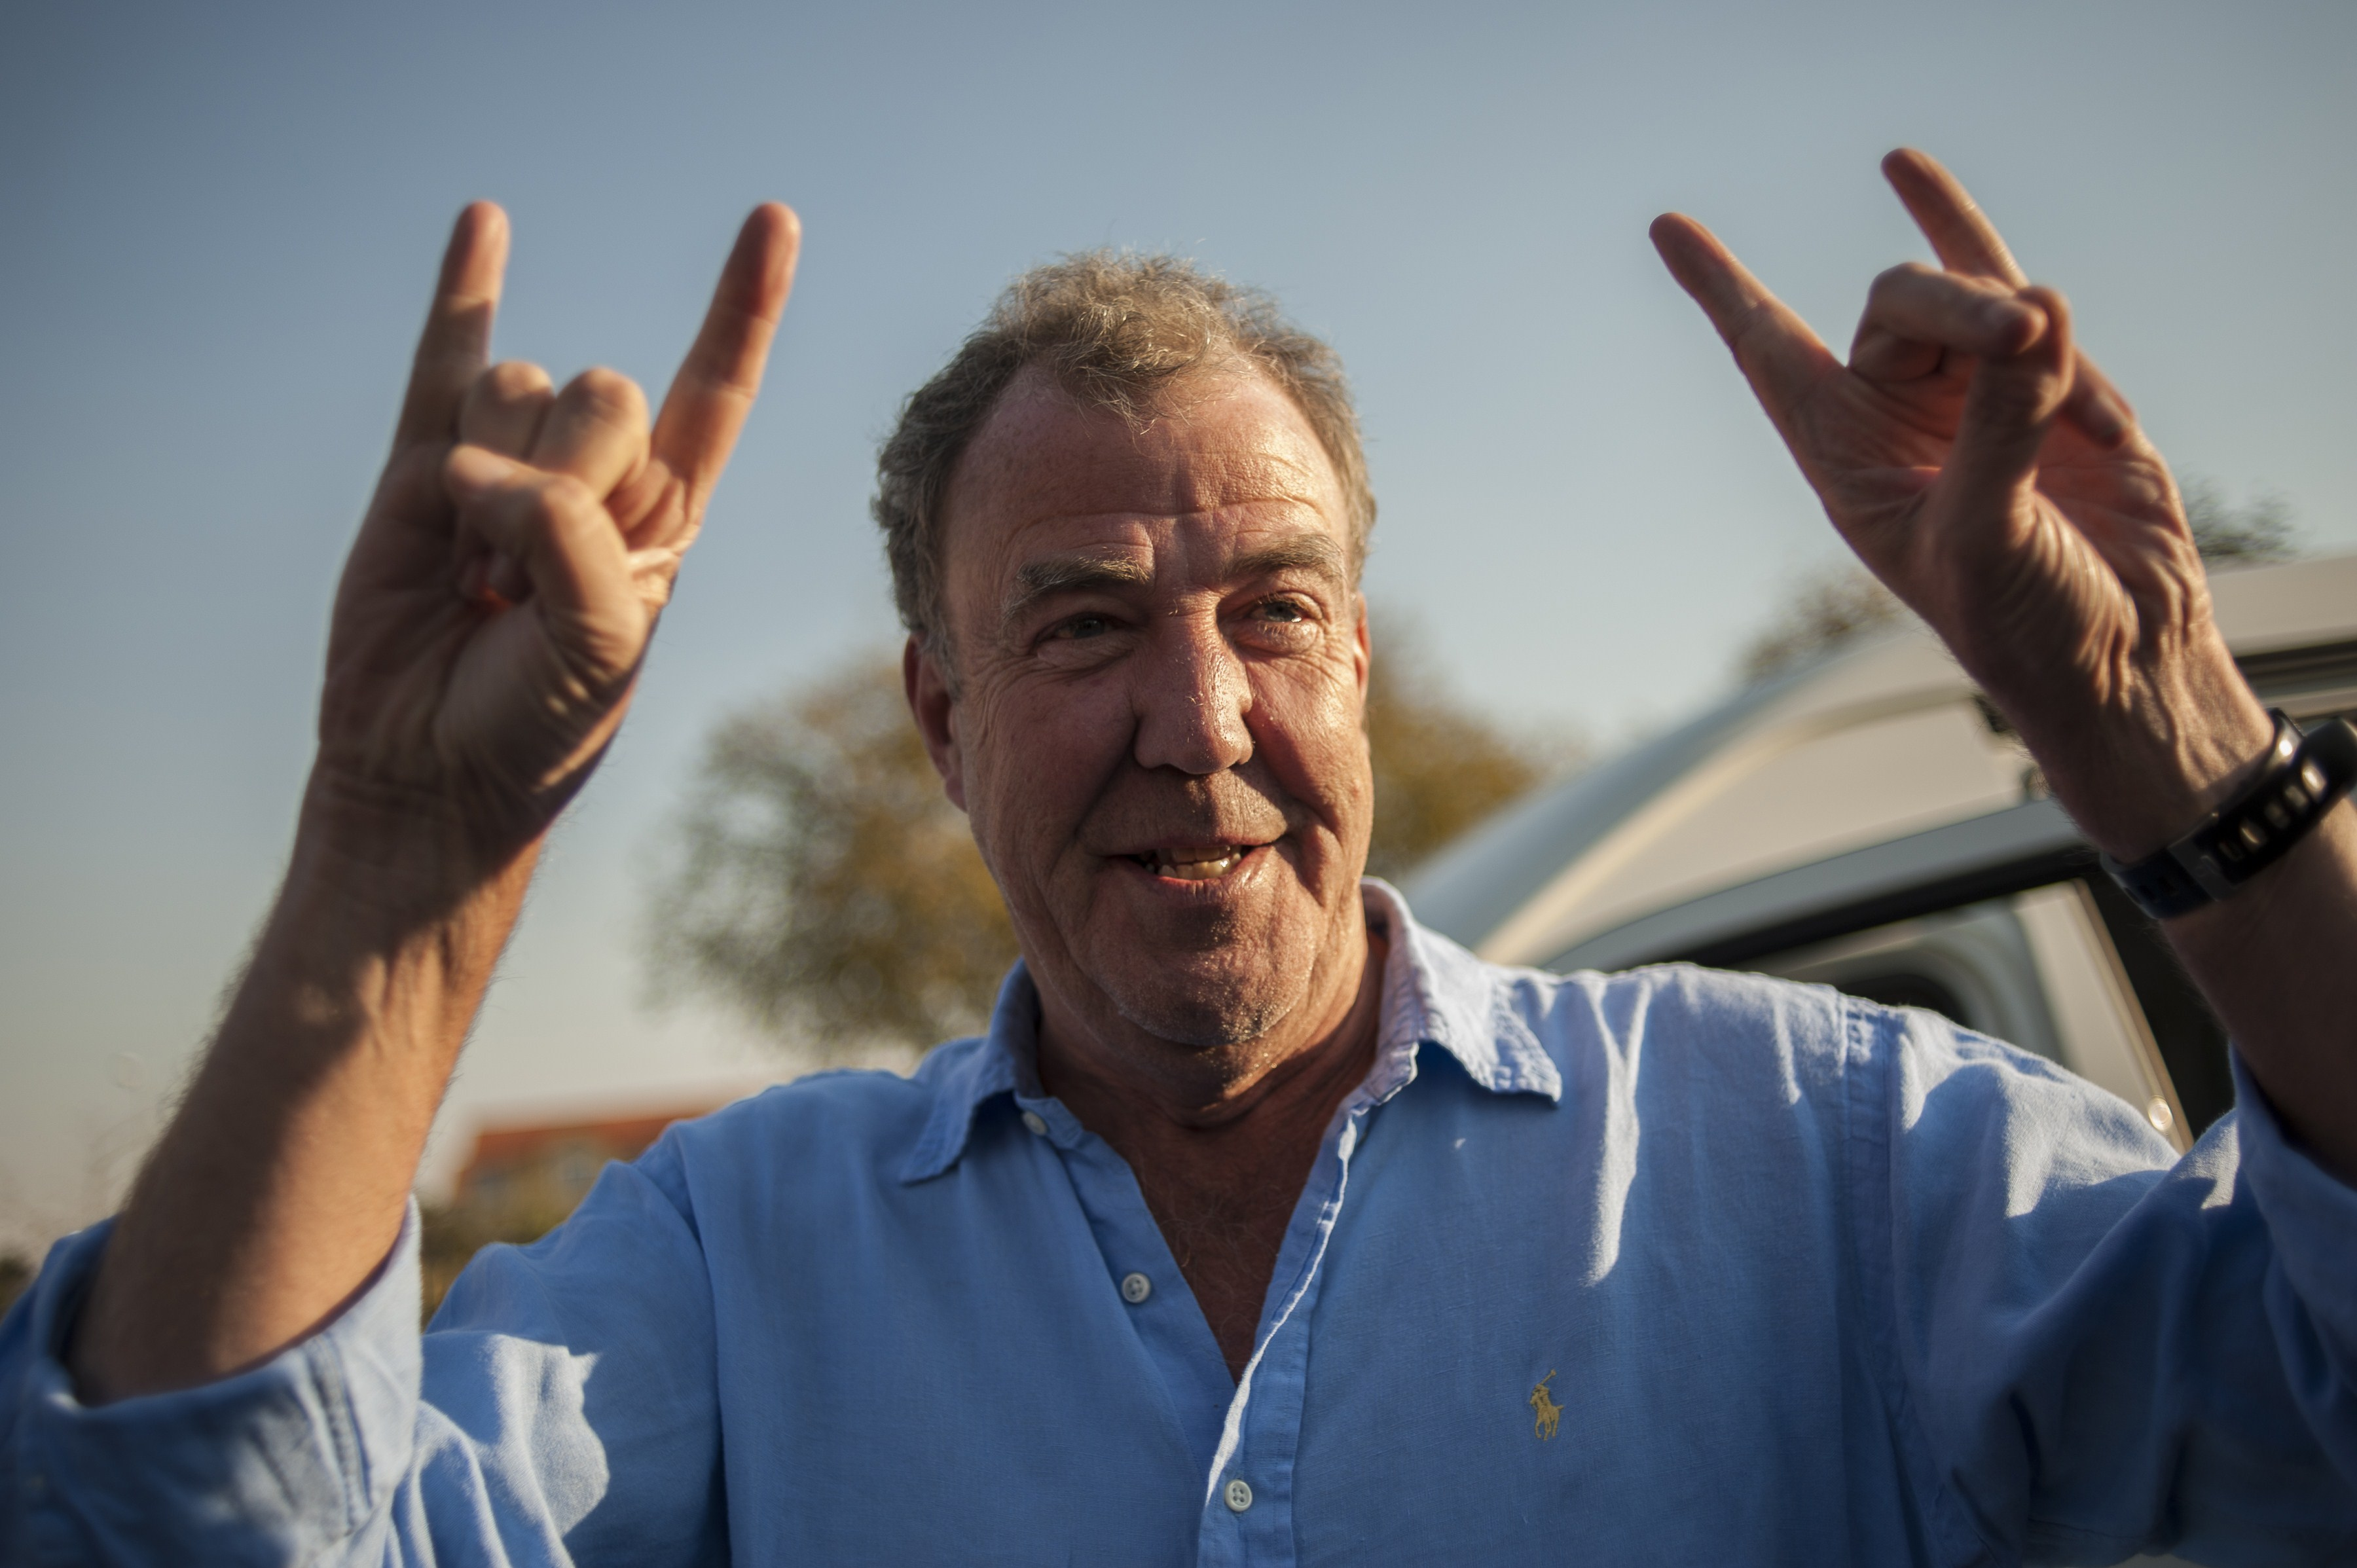 Former Top Gear presenter Jeremy Clarkson gestures as he arrives at the Ticketpro Dome for the Clarkson, Hammond and May Live Show held in Johannesburg on June 10, 2015. AFP PHOTO / STEFAN HEUNIS        (Photo credit should read STEFAN HEUNIS/AFP via Getty Images)